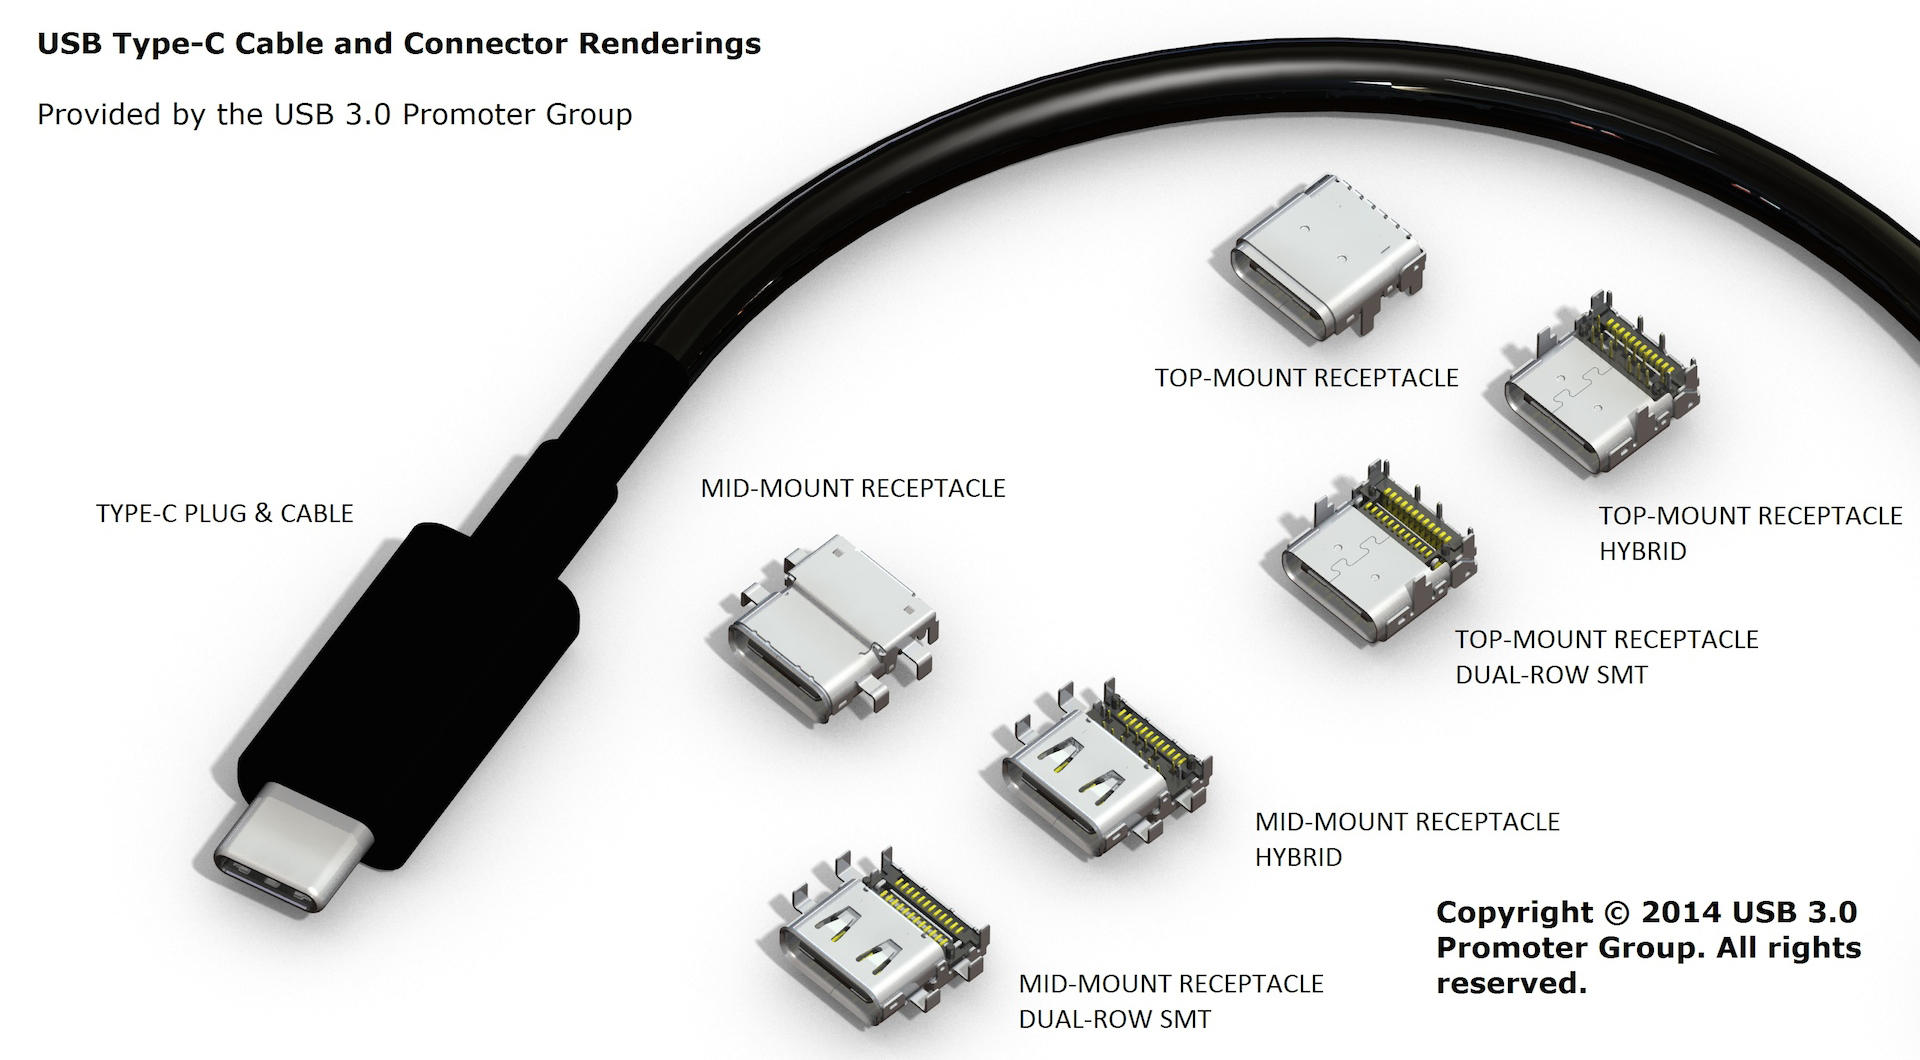 hight resolution of reversible usb type c connector finalized devices cables and adapters coming soon extremetech